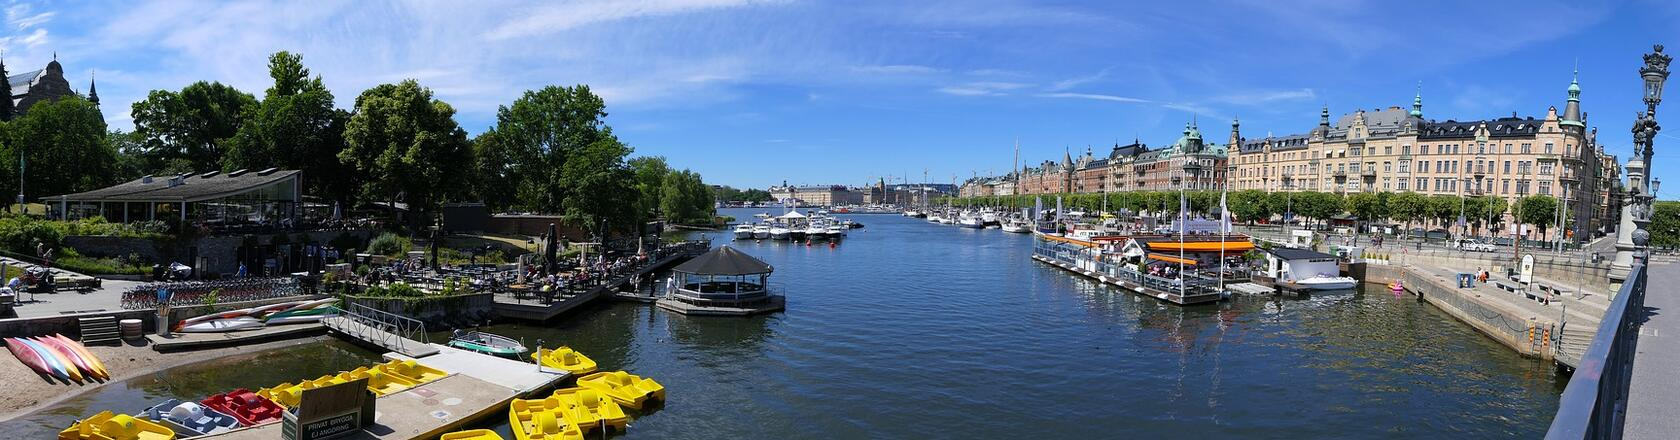 Stockholm in Sweden - Rent a holiday home with DanCenter